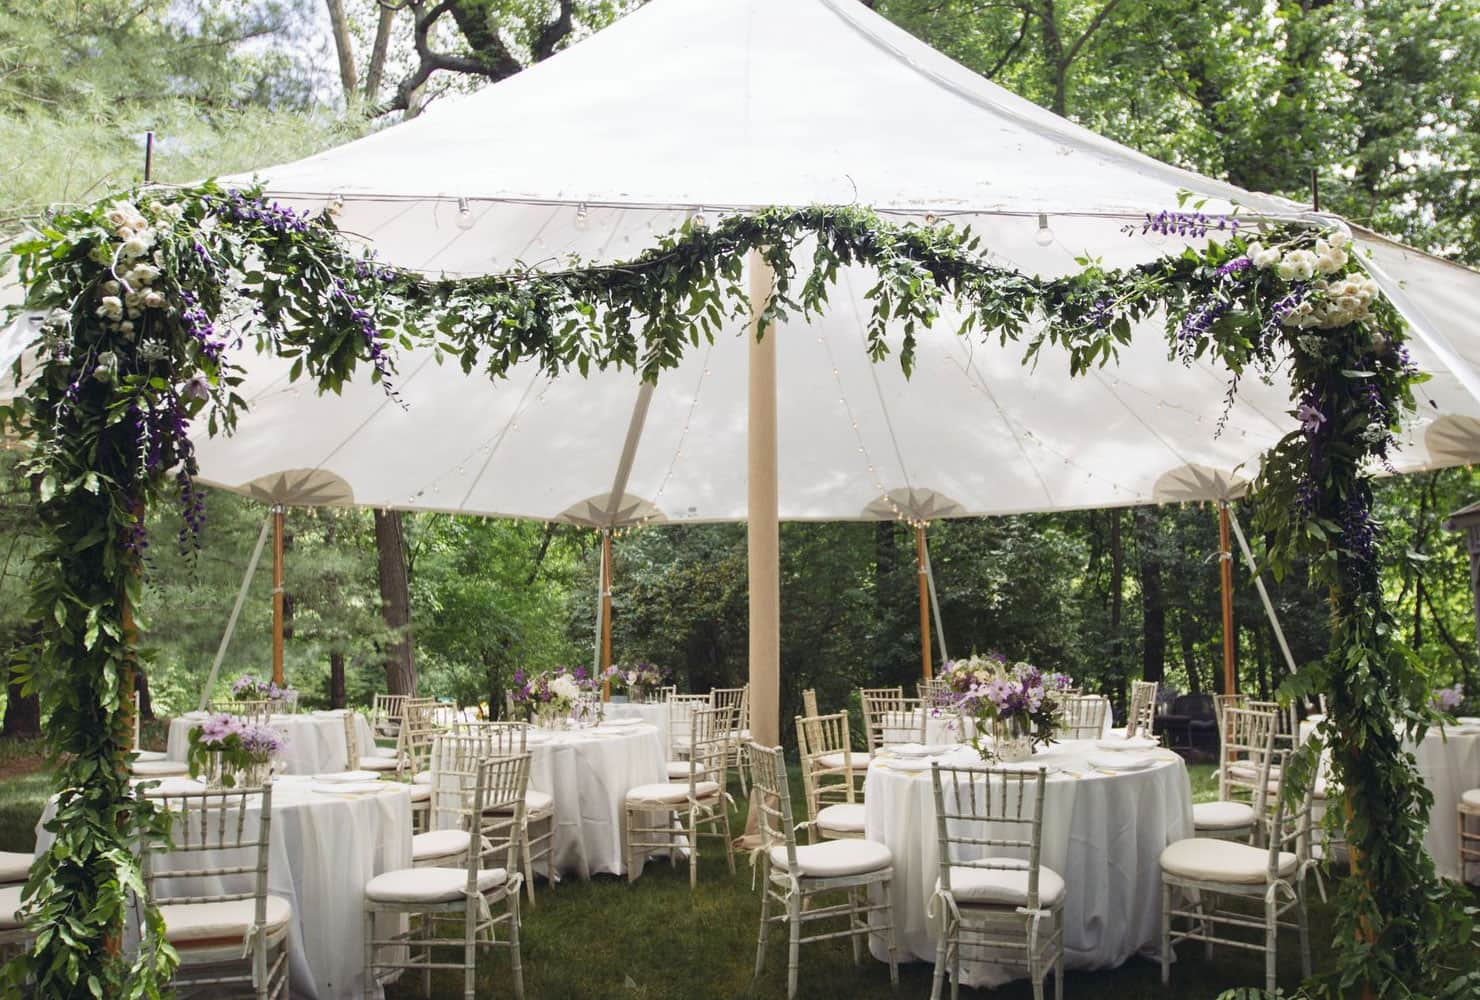 Garden party under white canopy and draping greenery